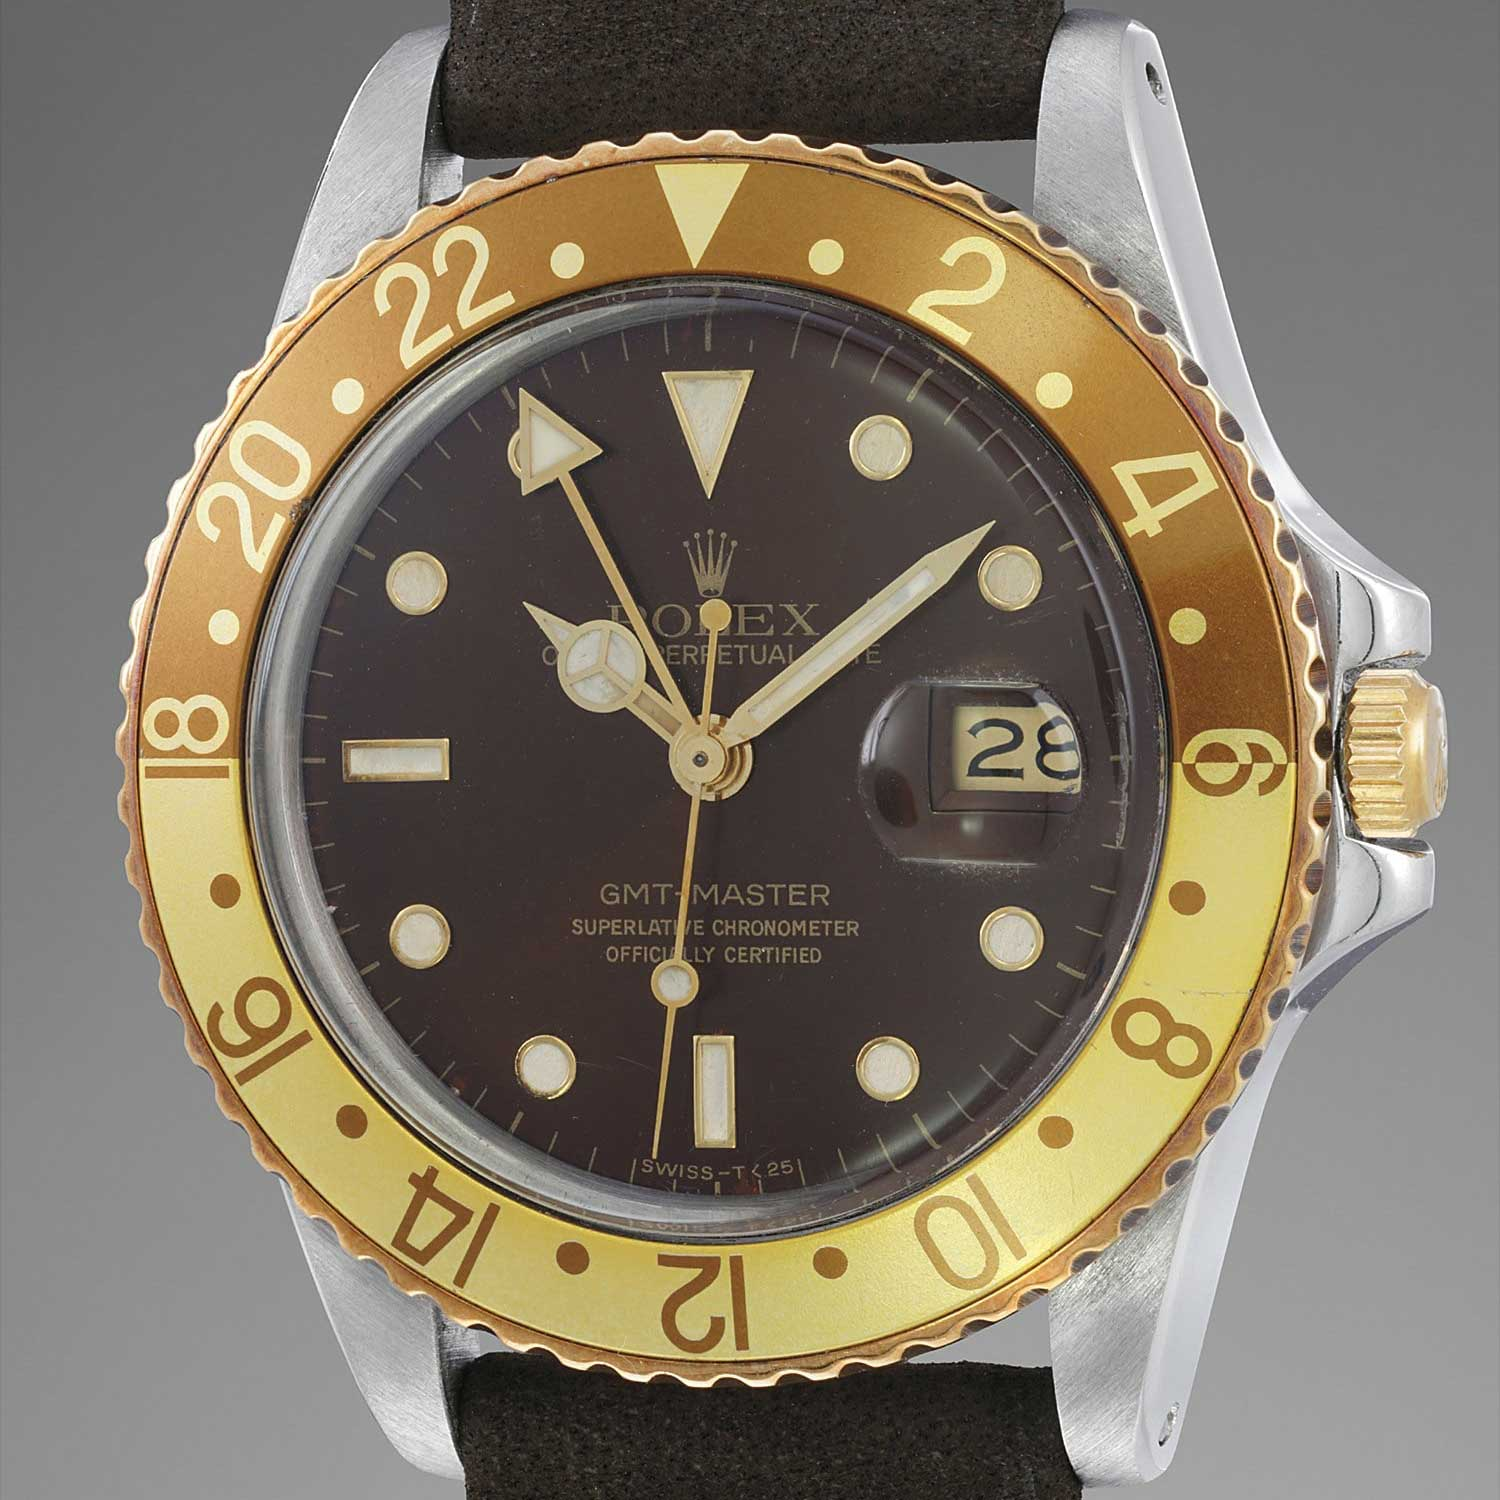 Lot 39: Rolex GMT-Master reference 16753 sold for CHF 24,375